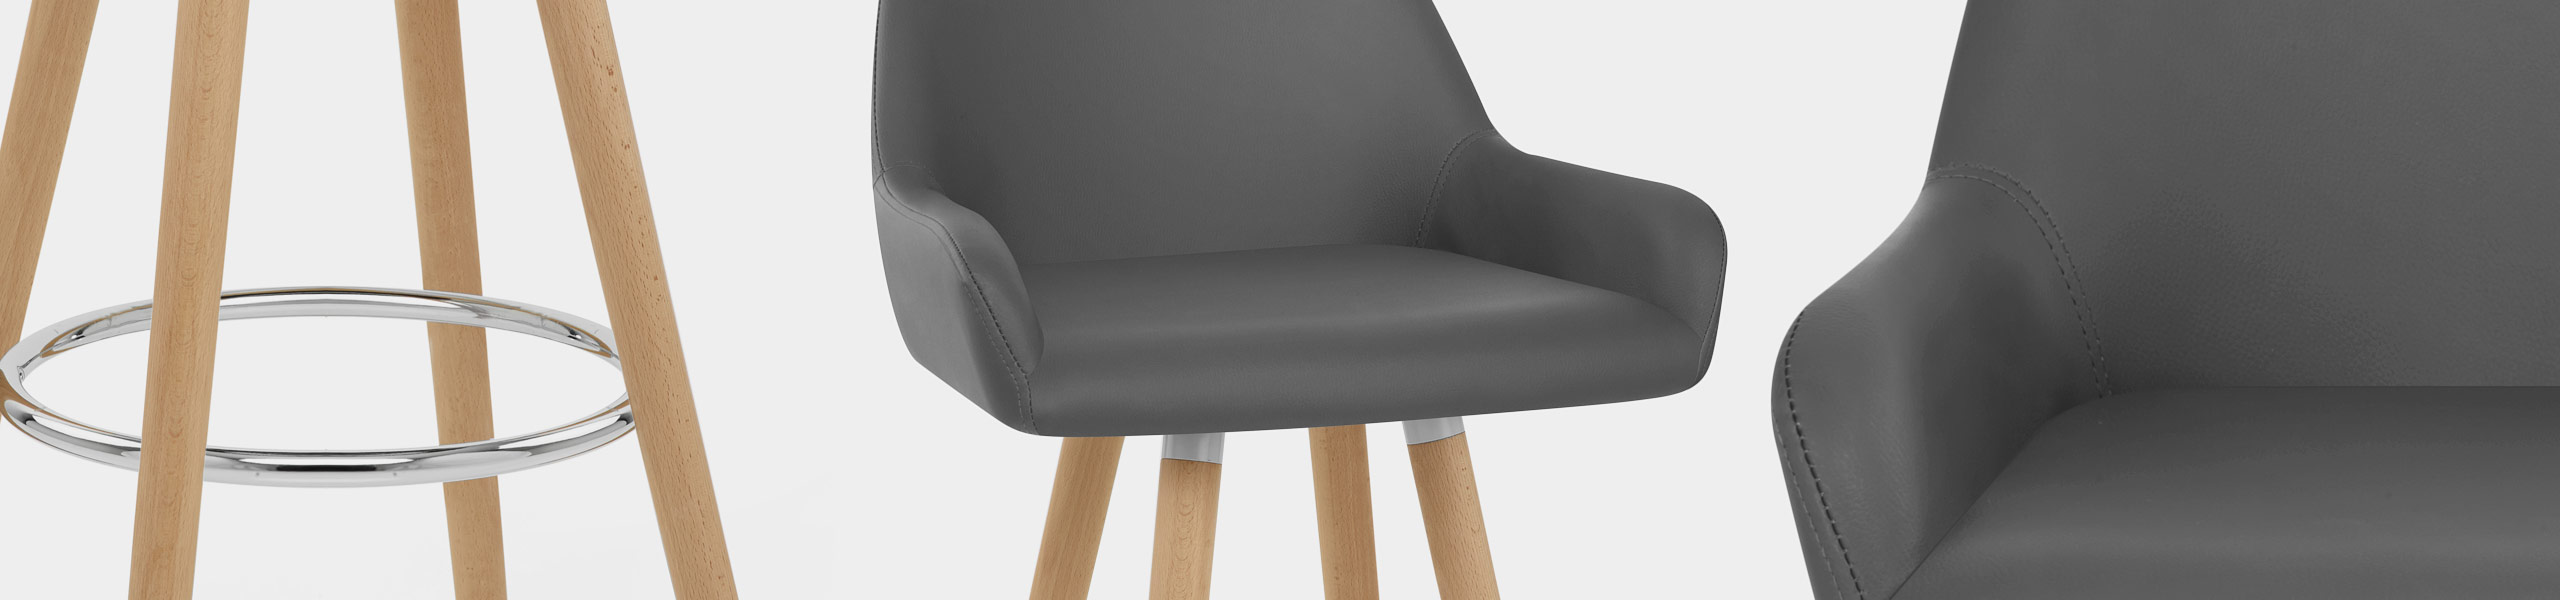 Solo Wooden Bar Stool Grey Video Banner